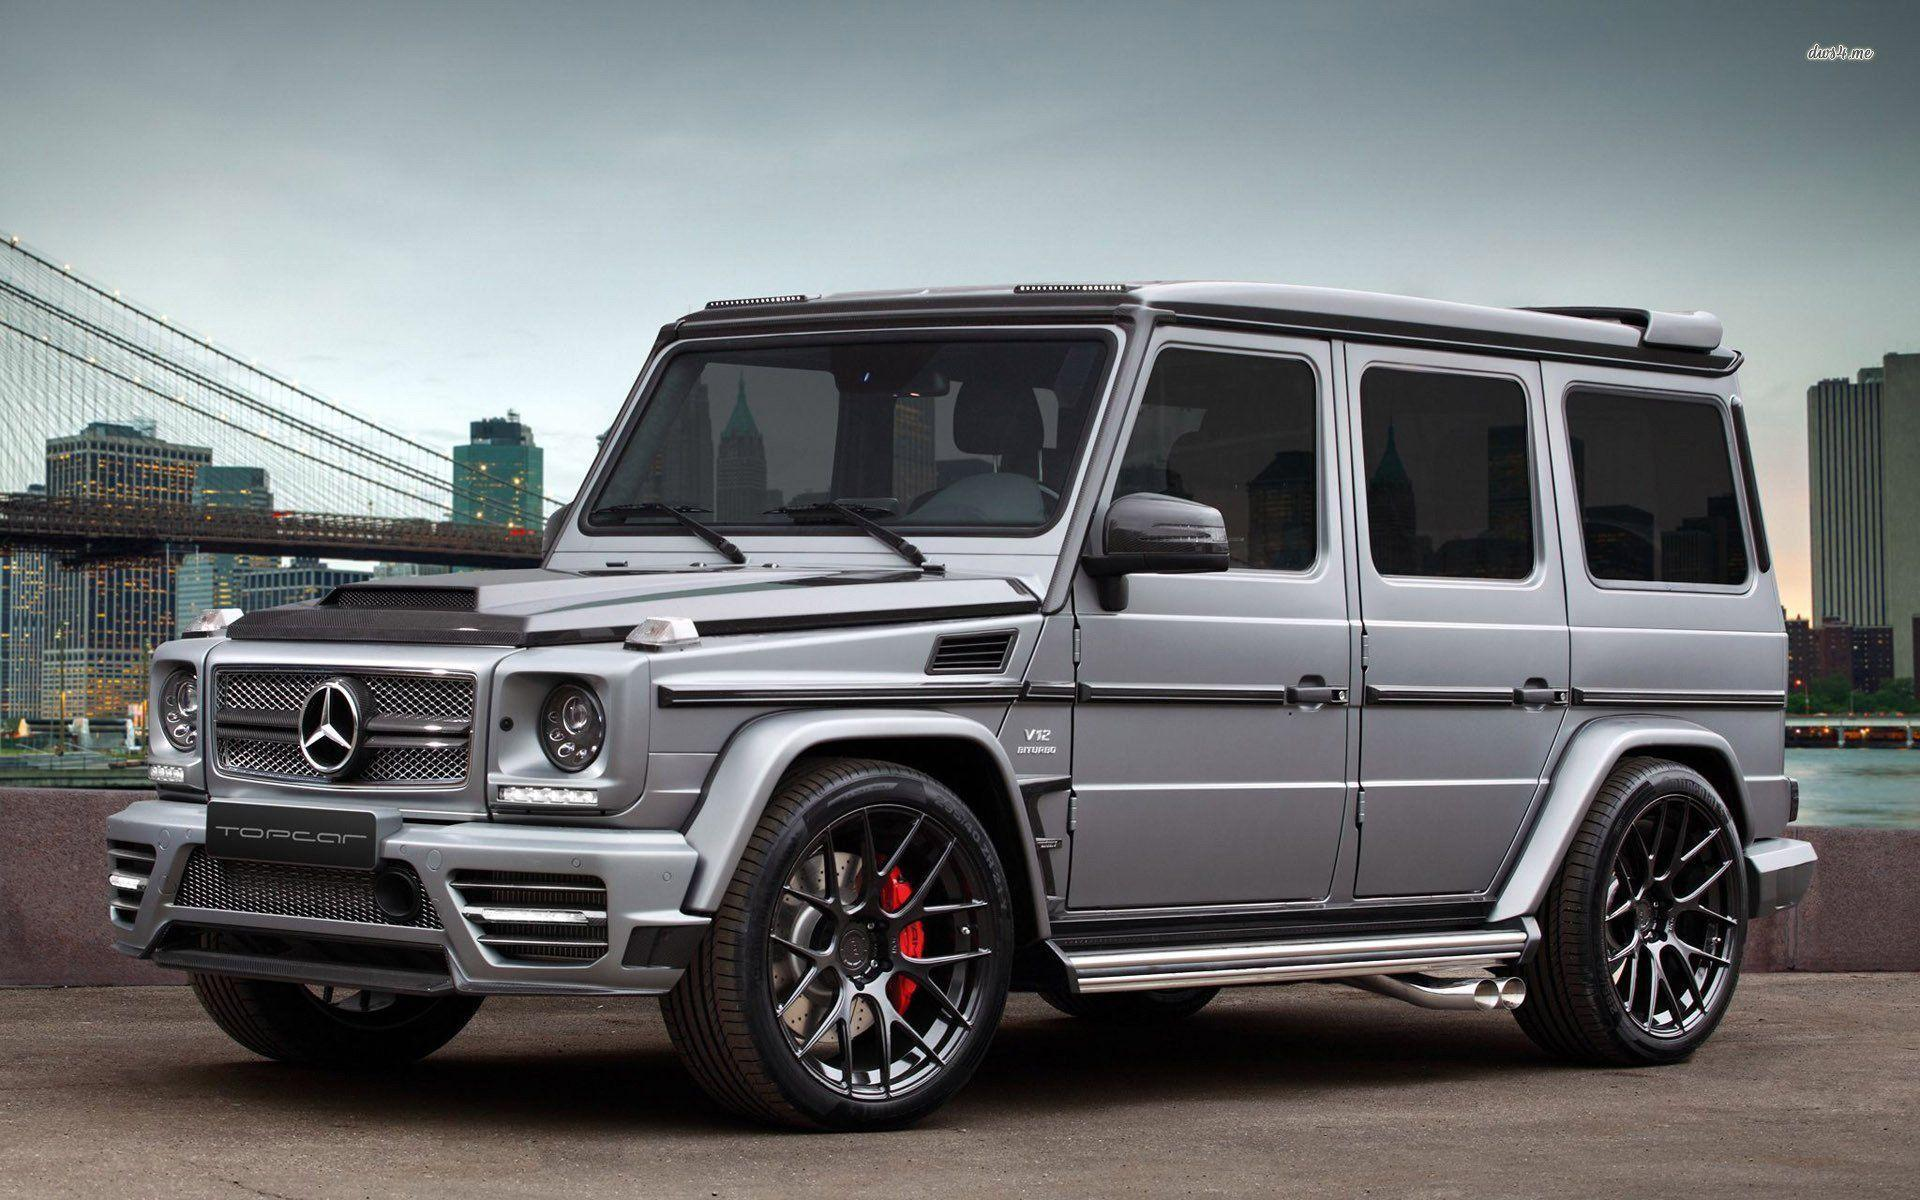 2014 Mercedes Benz G Wagon Amg Wallpapers Top Free 2014 Mercedes Benz G Wagon Amg Backgrounds Wallpaperaccess